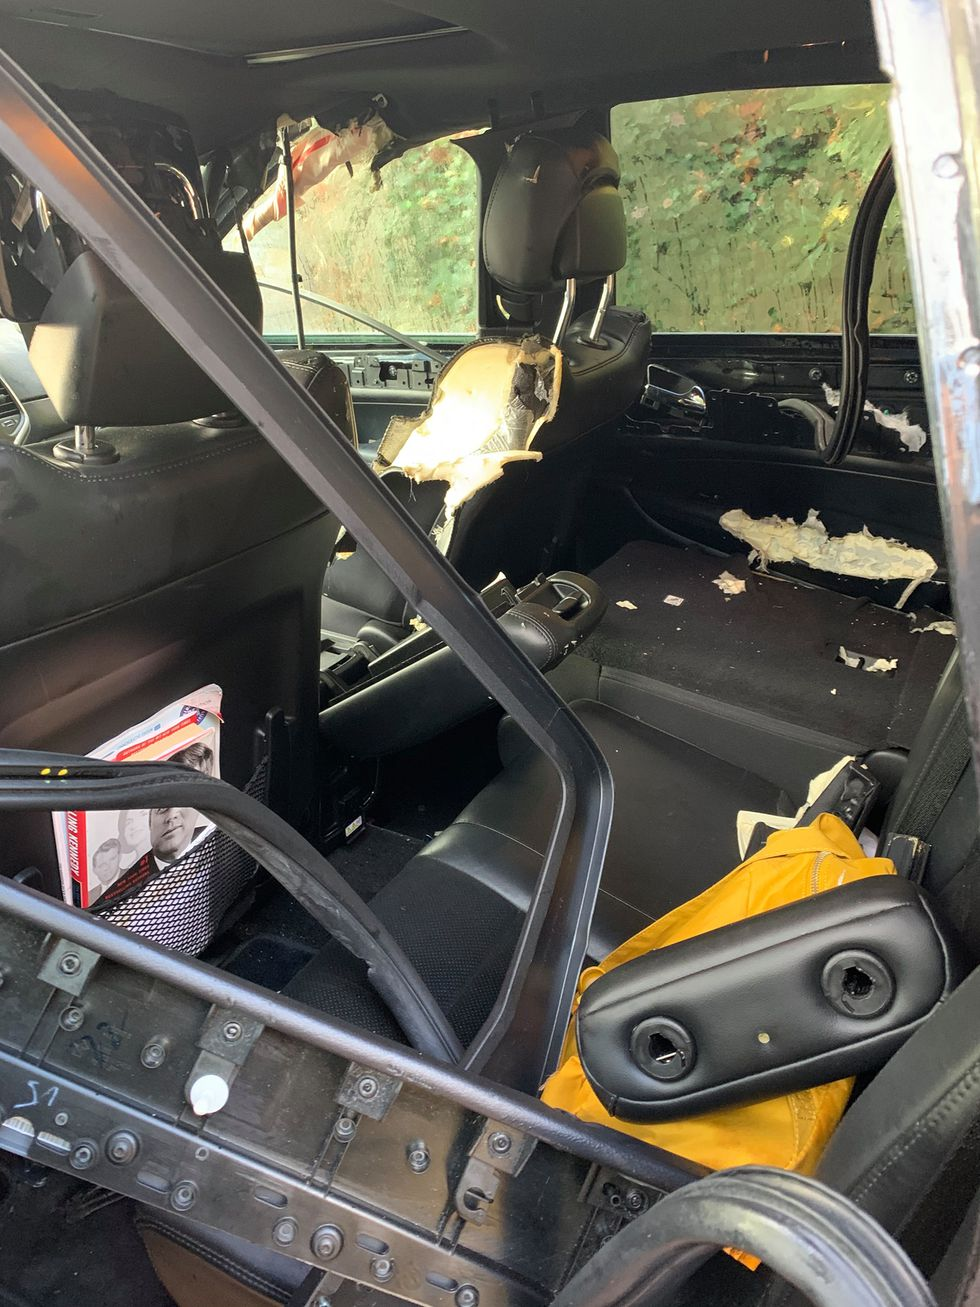 Bear gets stuck in Jeep during couple's honeymoon